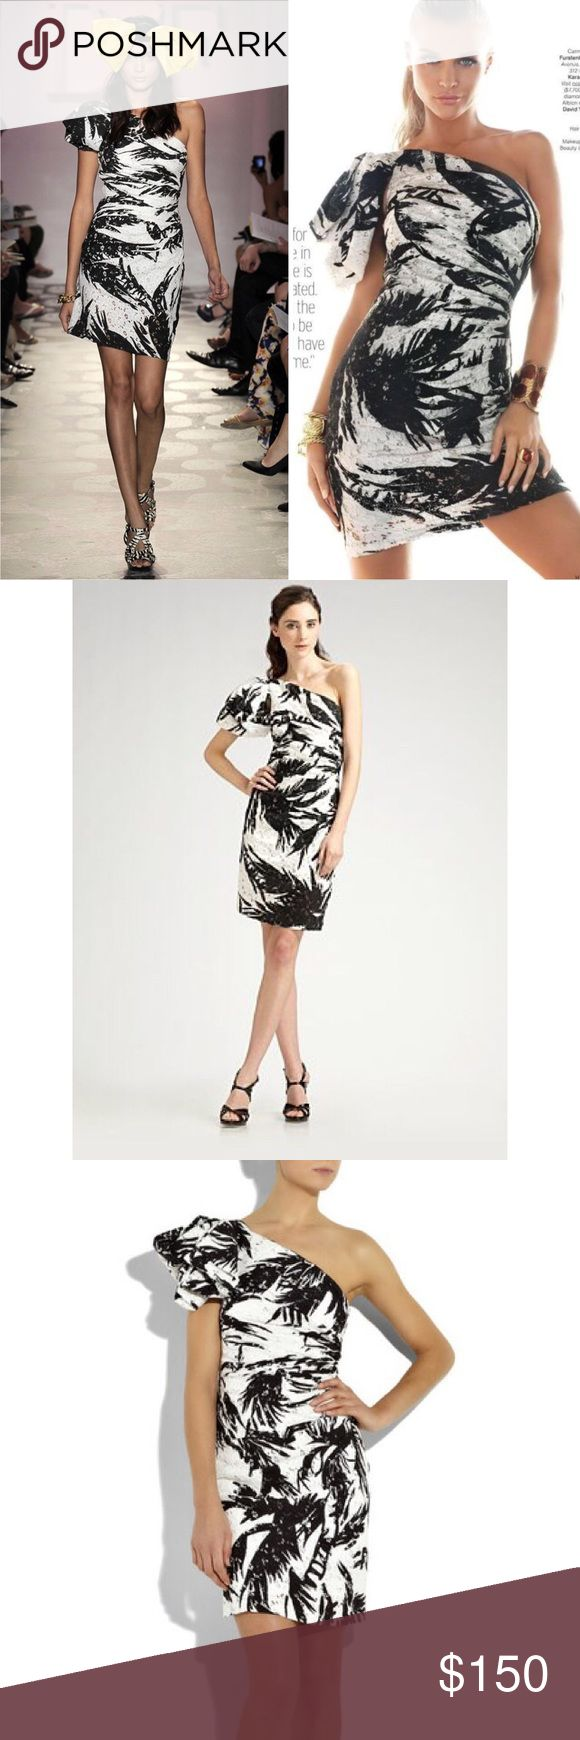 "▪️DVF Carmona Palms Black White One Shoulder Dress Diane von Furstenberg's black & white laceprint dress. Let this one-shoulder style take center stage by adding simple black accessories.  Dress has a gathered side, ruffle detail at puffed shoulder, side zip-fastening, one short sleeve and is fully lined in stretch-silk. 100% cotton; lining: 92% silk, 8% spandex. Dry clean. *Gently used, cared for, no stains*  Style# D8825600J10  See pic for measurements. 36"" length  DVF Resort Runway Show…"